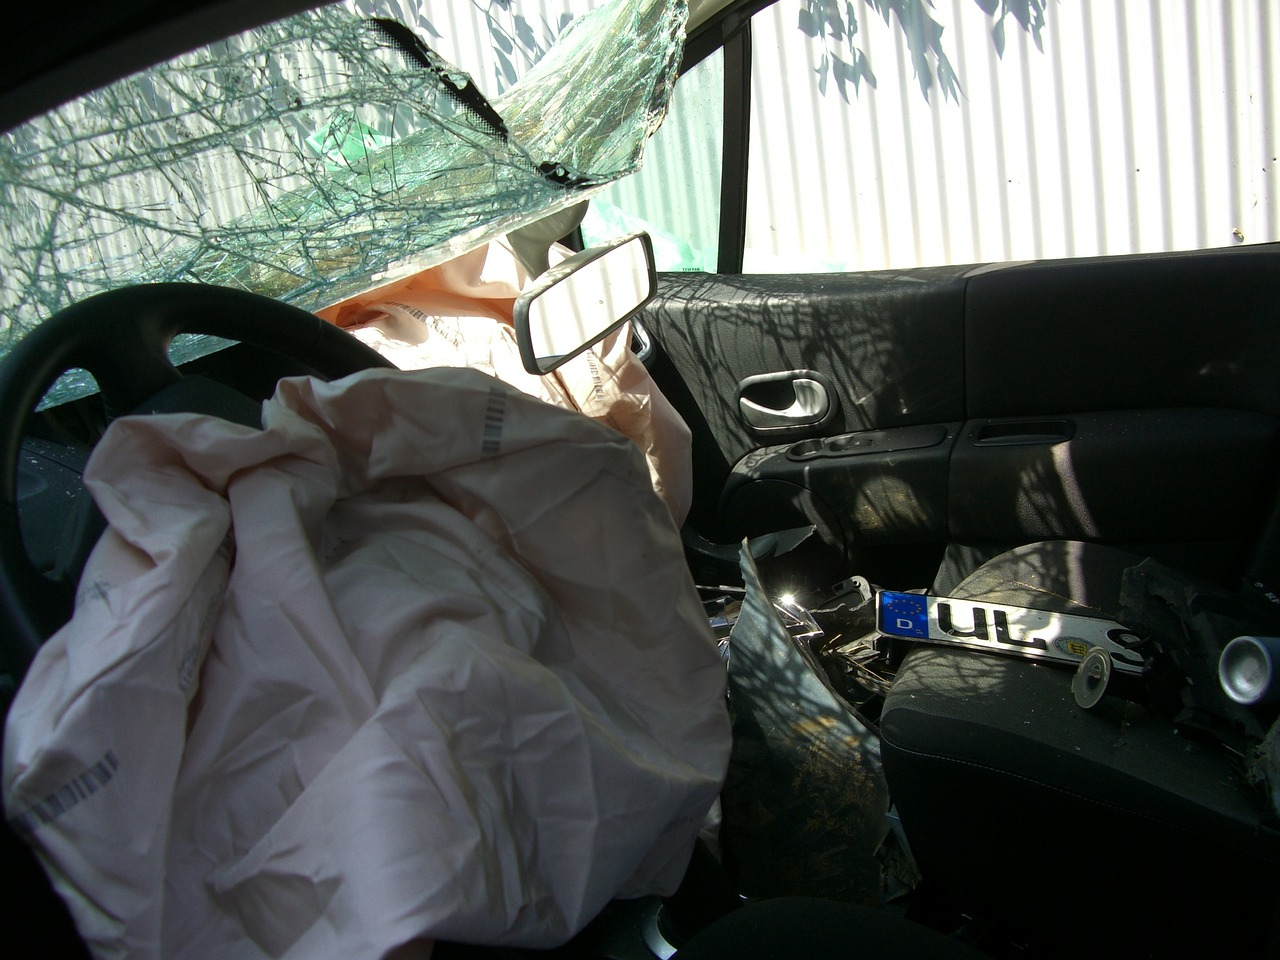 airbag explosion